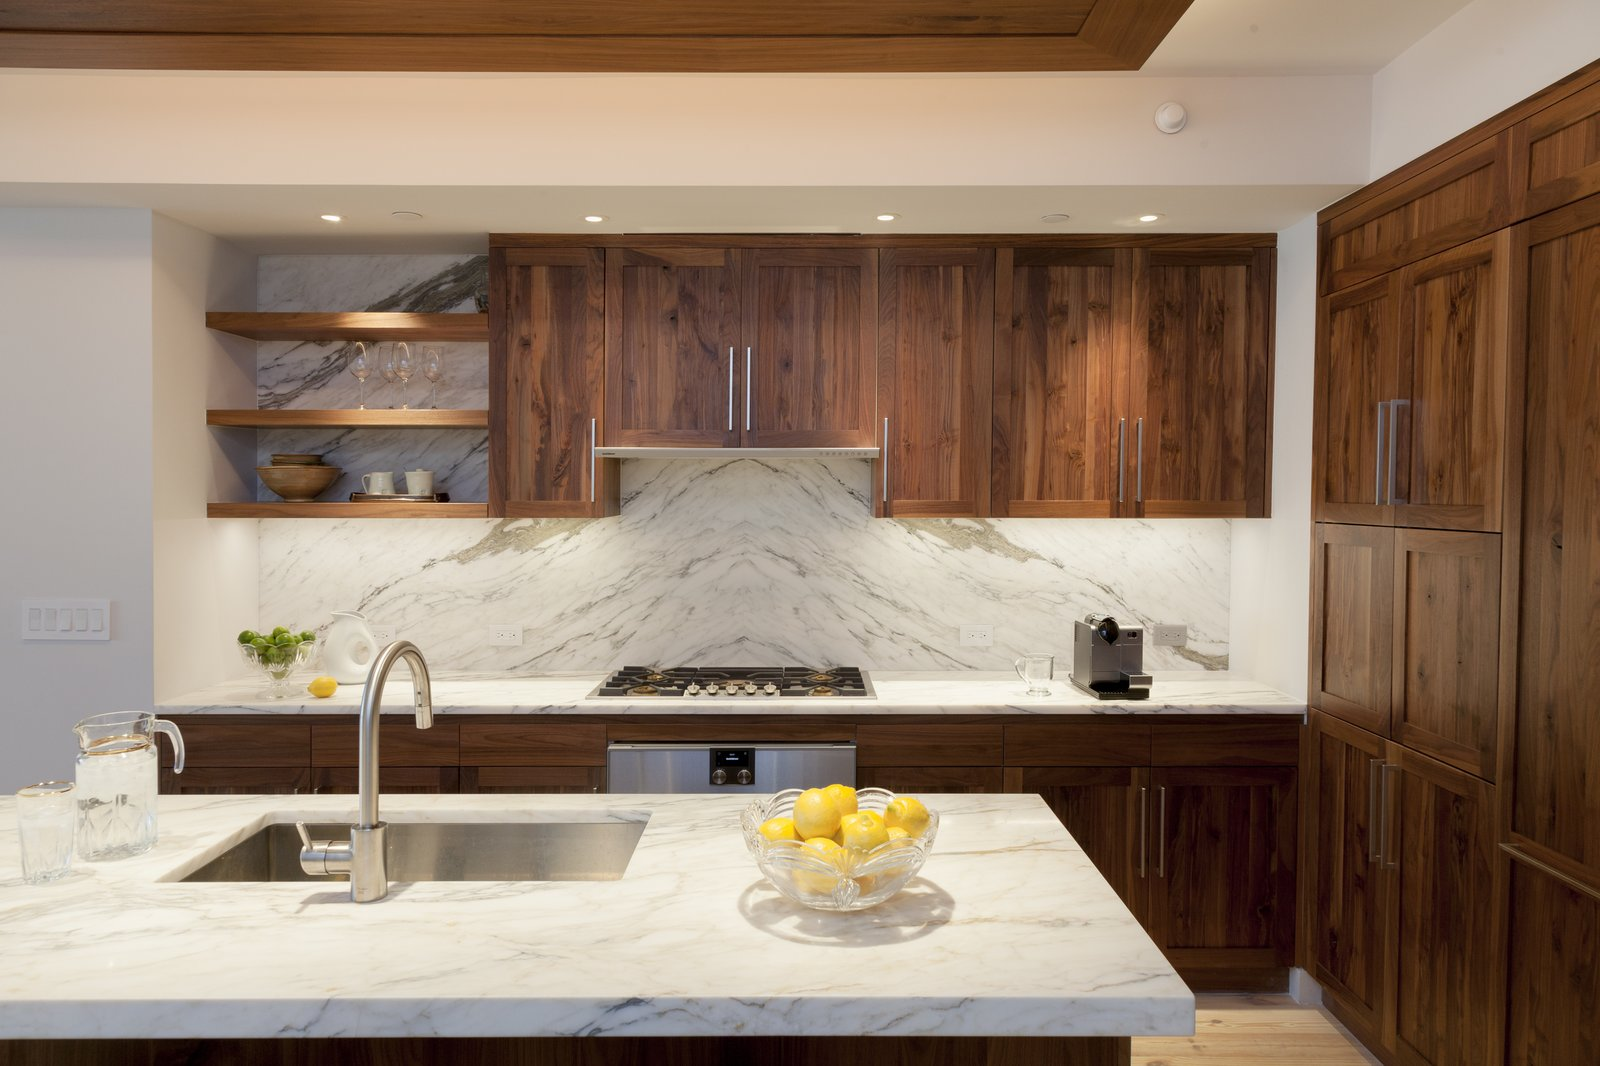 Walnut and book-matched  Calcutta kitchen Tagged: Kitchen, Marble, Wood, Stone Slab, Ceiling, Pendant, Light Hardwood, Accent, Recessed, Refrigerator, Wall Oven, Cooktops, Range, Range Hood, Wine Cooler, Ice Maker, Dishwasher, Microwave, and Undermount.  Best Kitchen Refrigerator Dishwasher Photos from Pierhouse At Brooklyn Bridge Park Condo